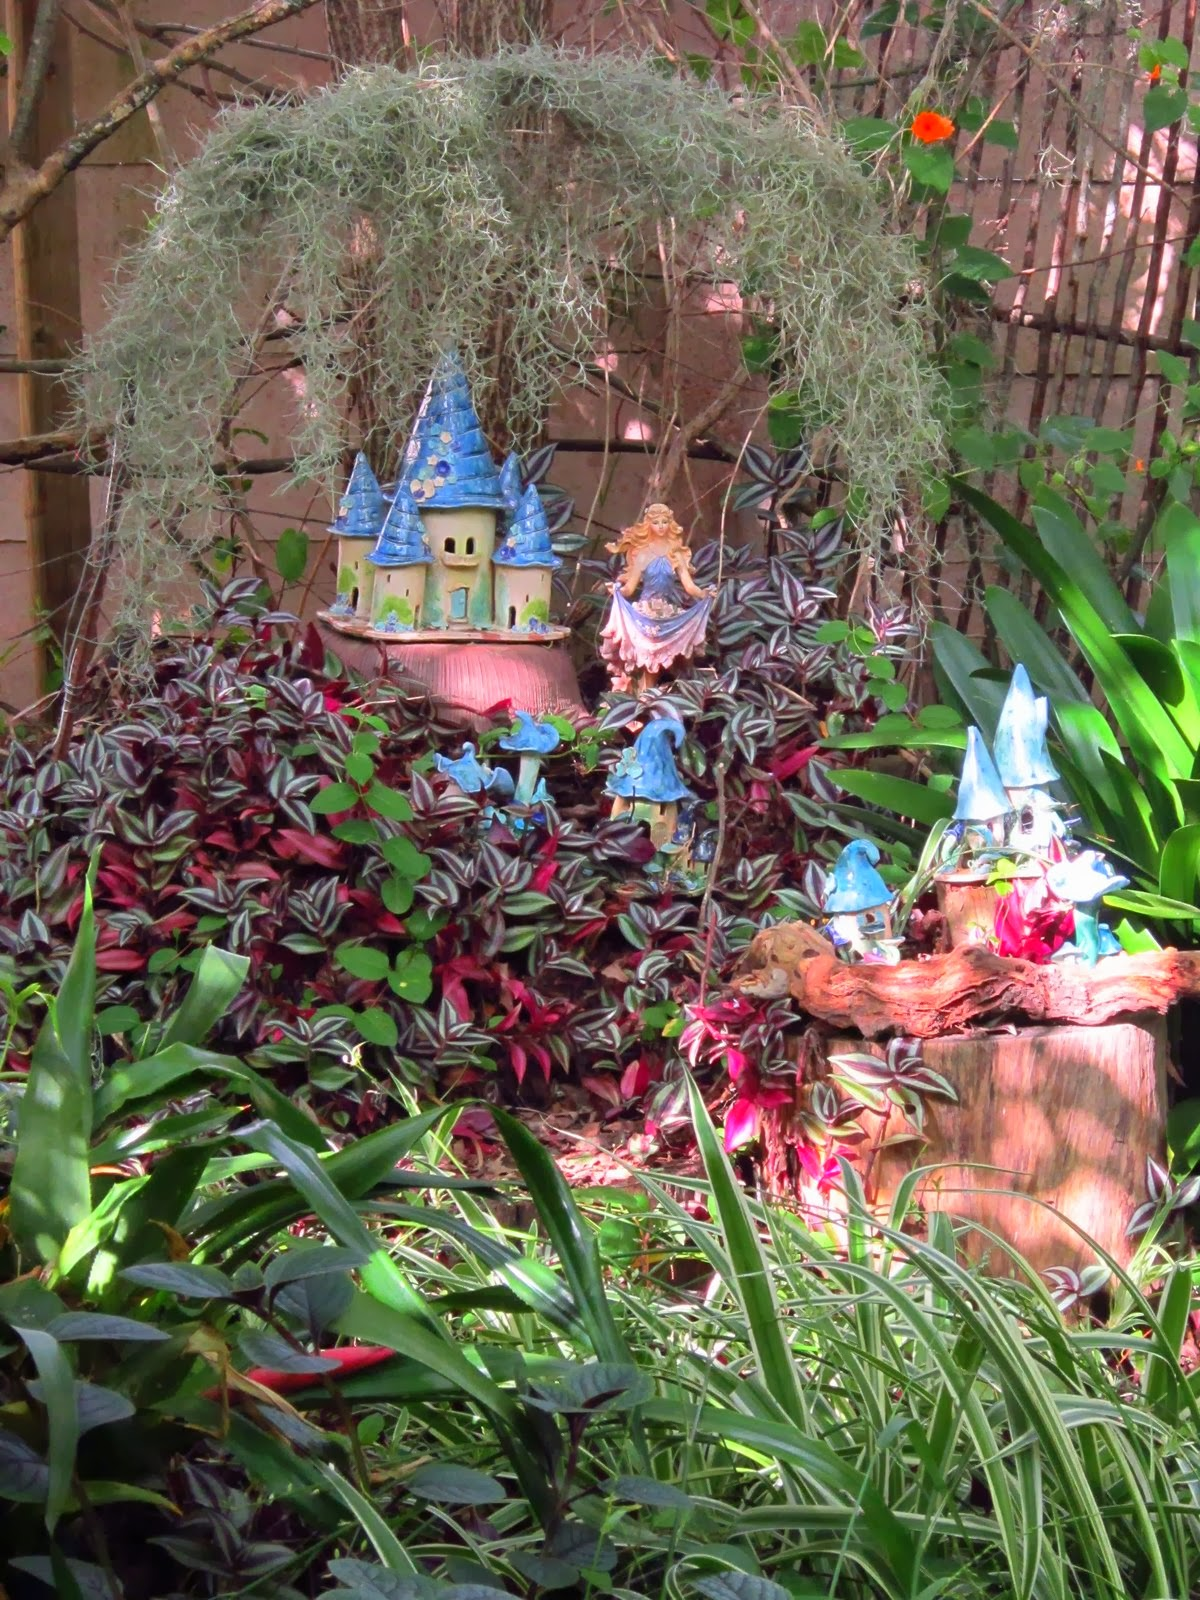 The continent of sulina a walk through the faerie garden - When you walk through the garden ...